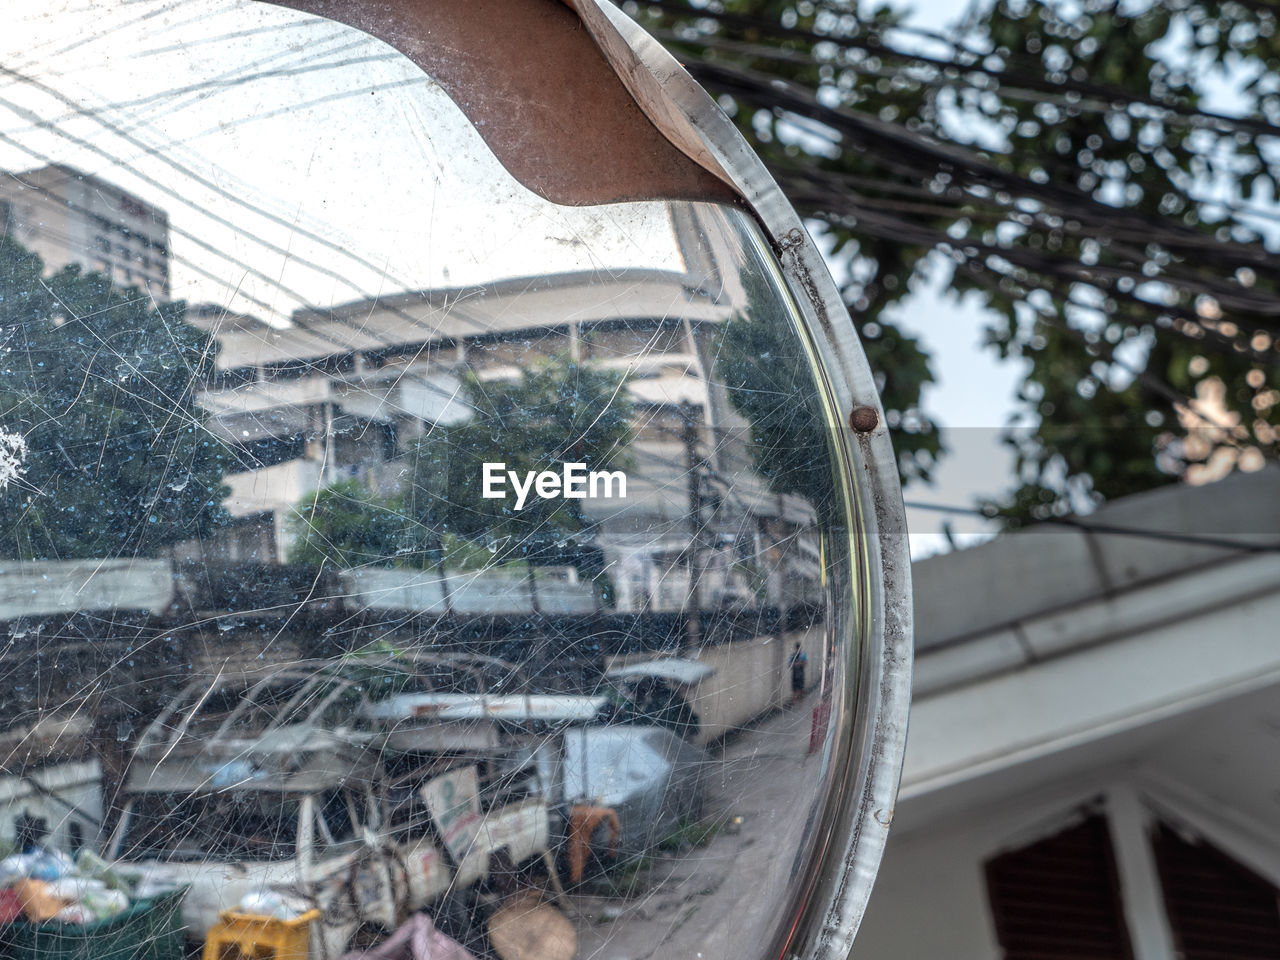 built structure, architecture, building exterior, tree, day, reflection, glass - material, focus on foreground, building, window, transparent, nature, plant, outdoors, house, no people, city, residential district, transportation, glass